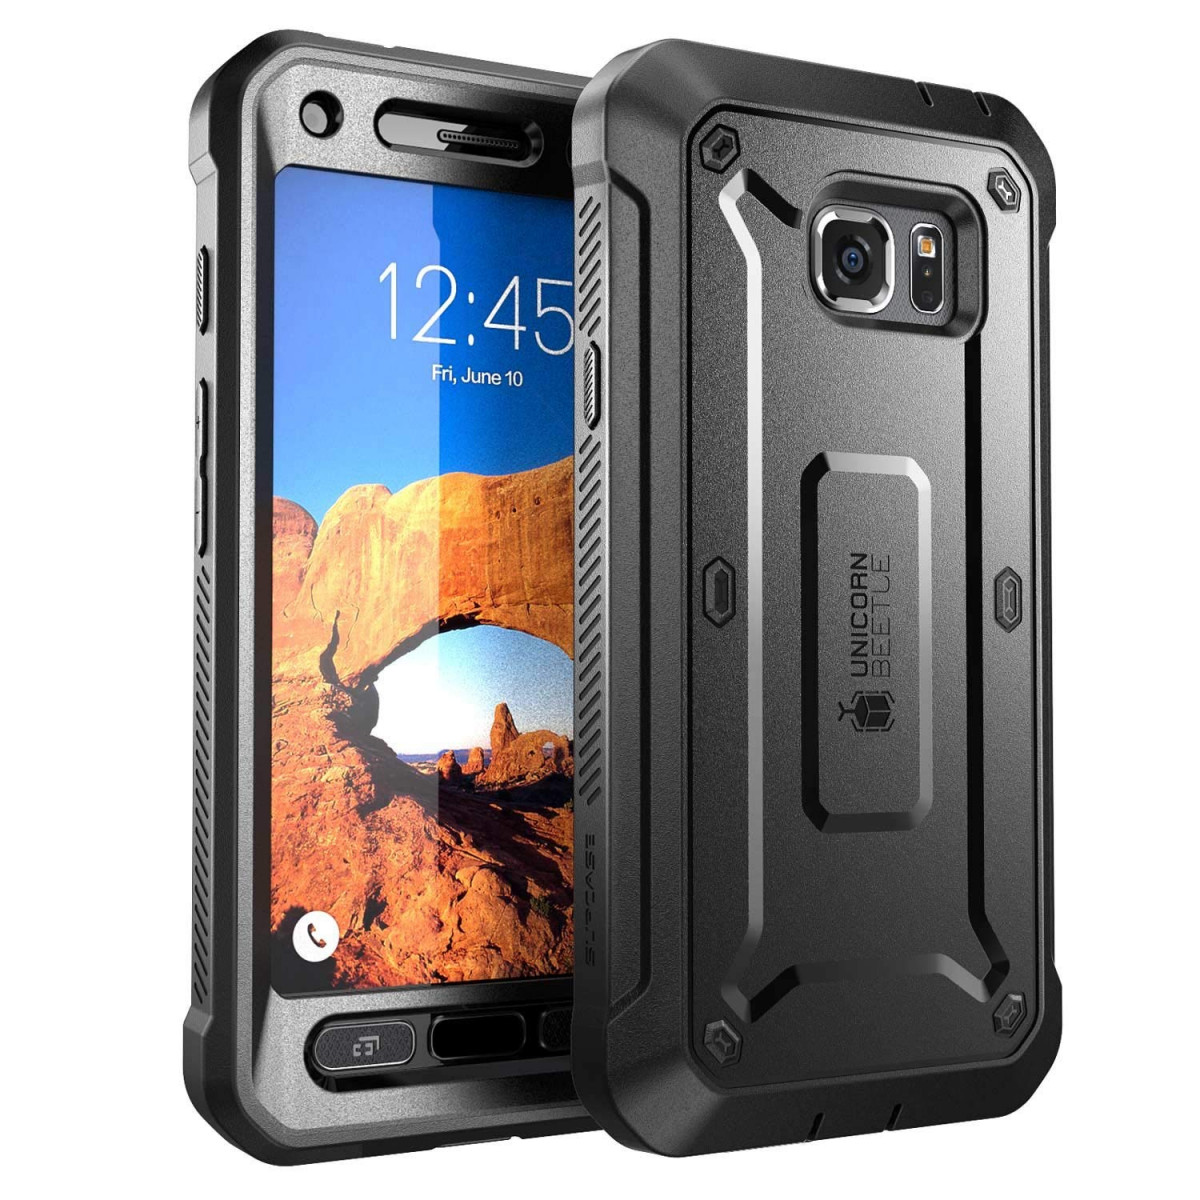 Galaxy S7 Active Case, SUPCASE Full-Body Rugged Holster Case with Built-in  Screen Protector for Samsung Galaxy S7 Active, Unicorn Beetle PRO Series